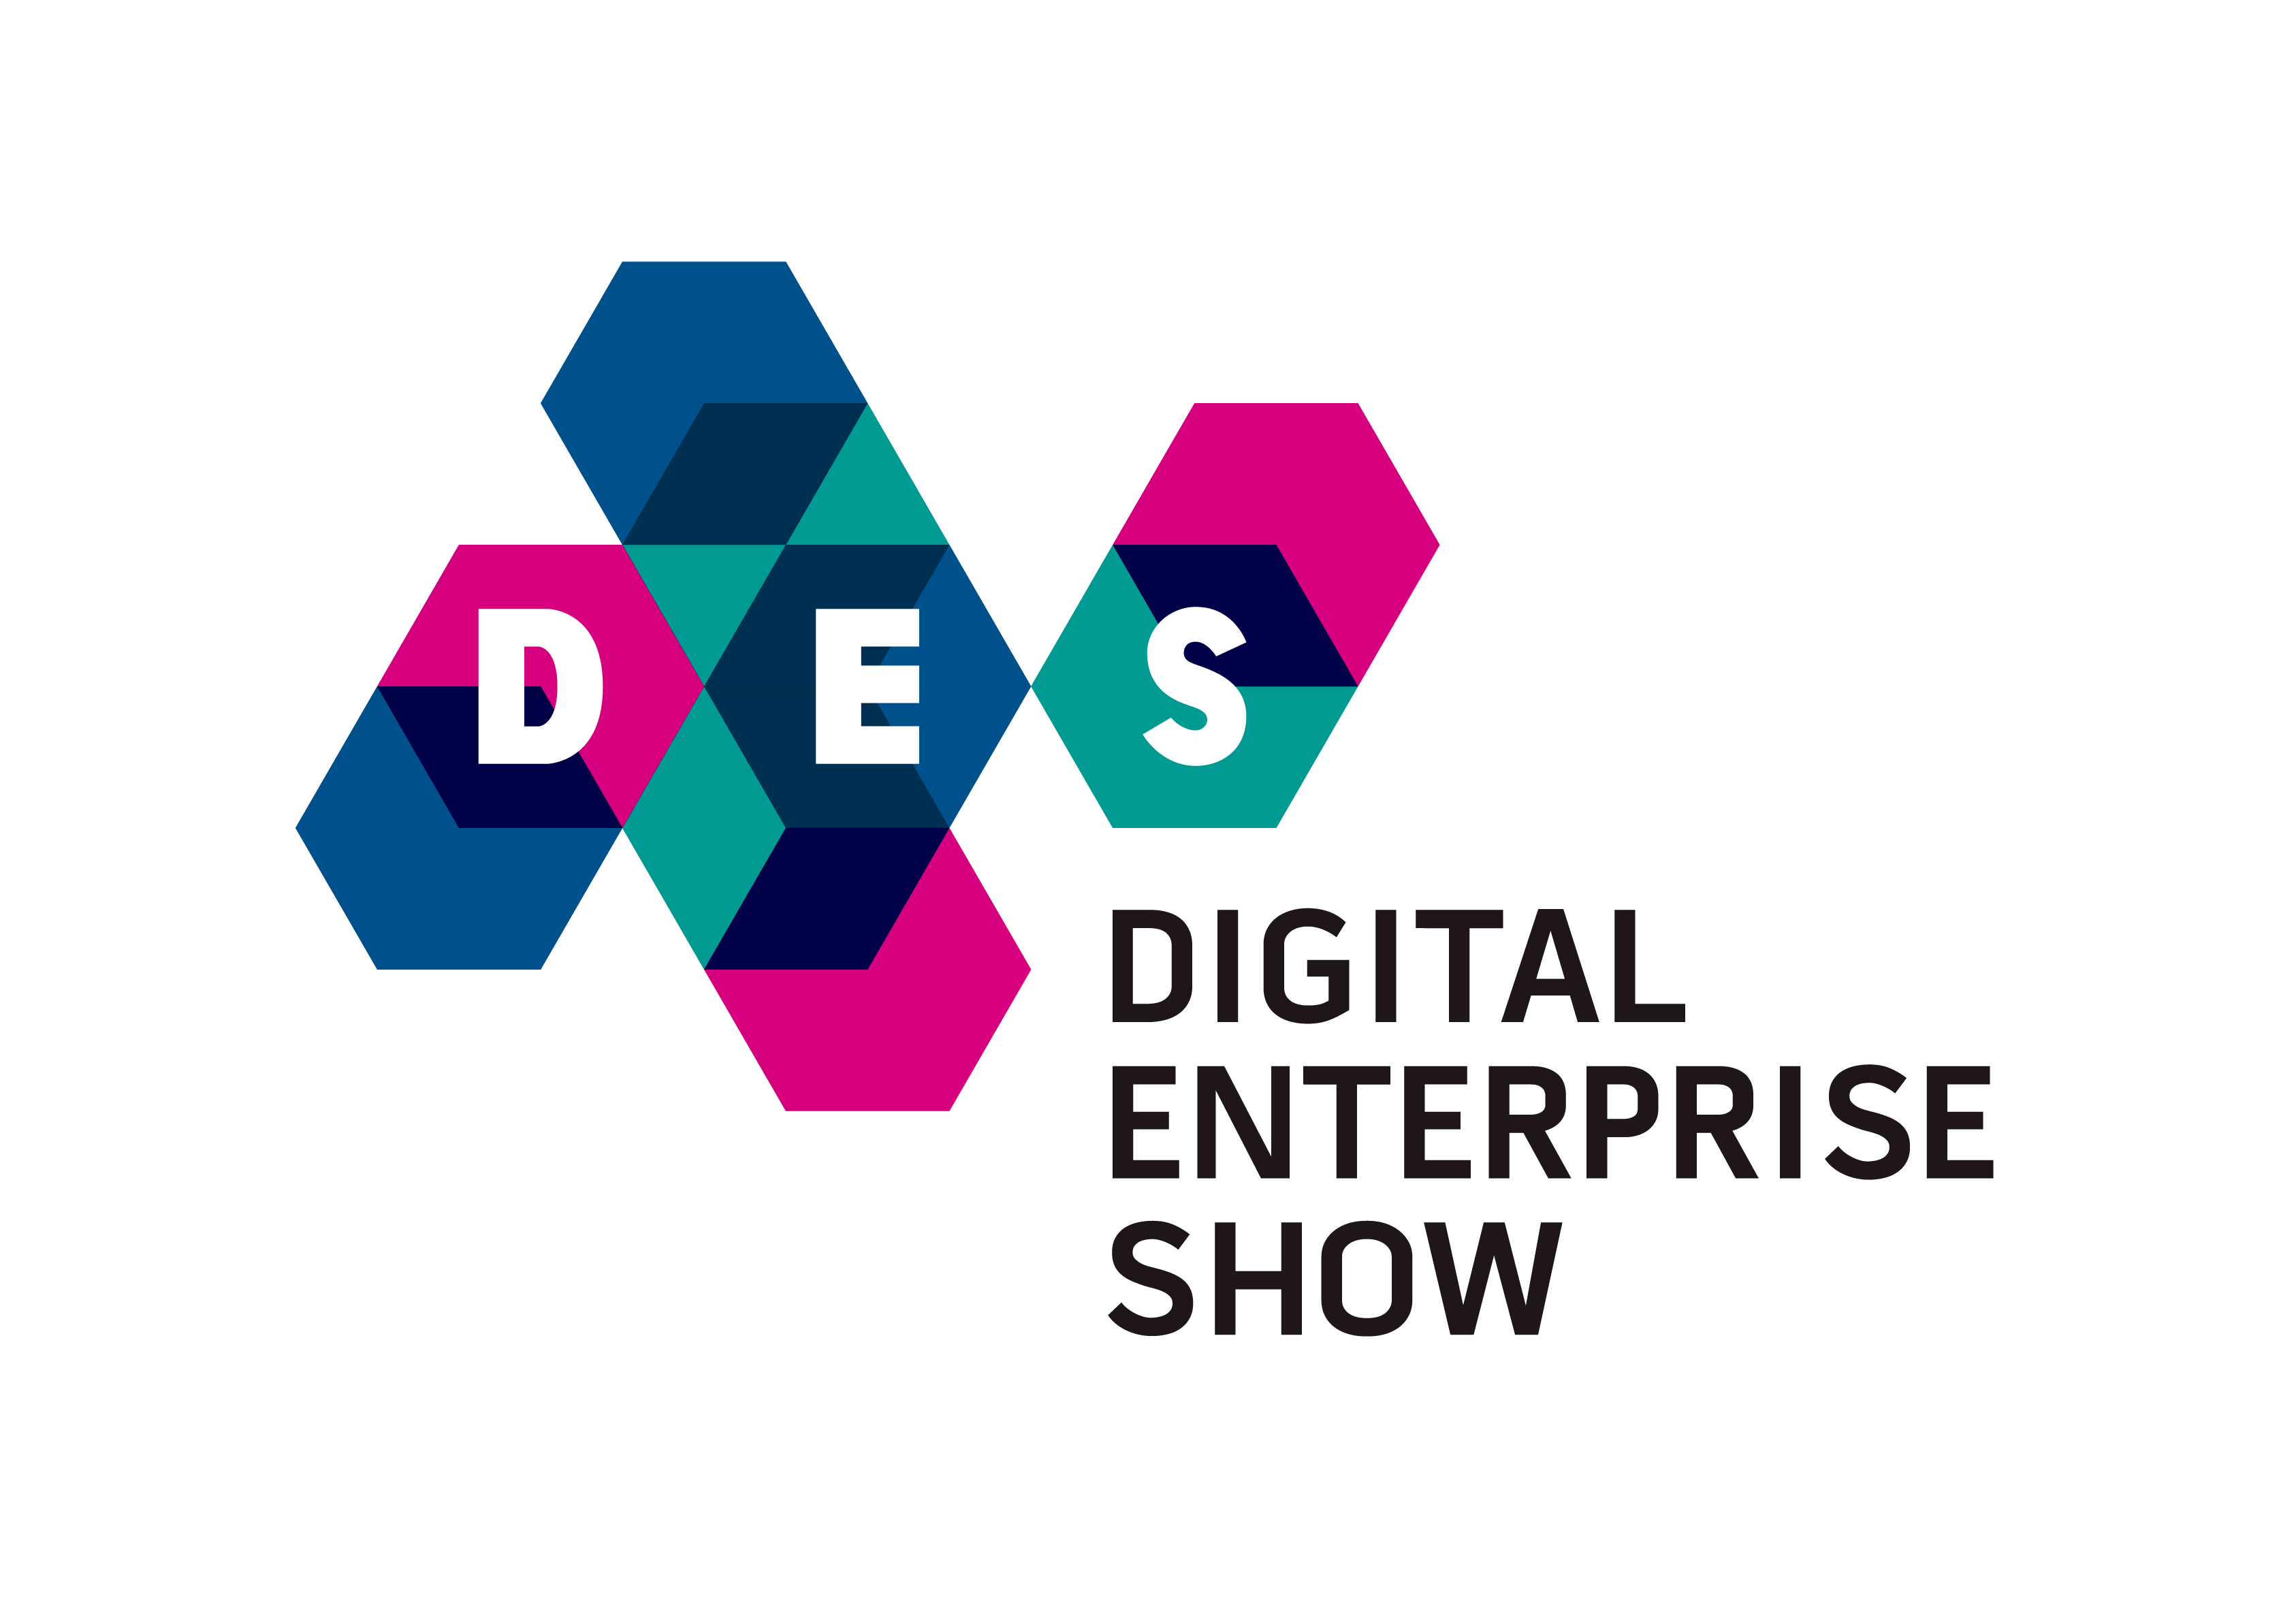 Digital Enterprise Show Official Logo